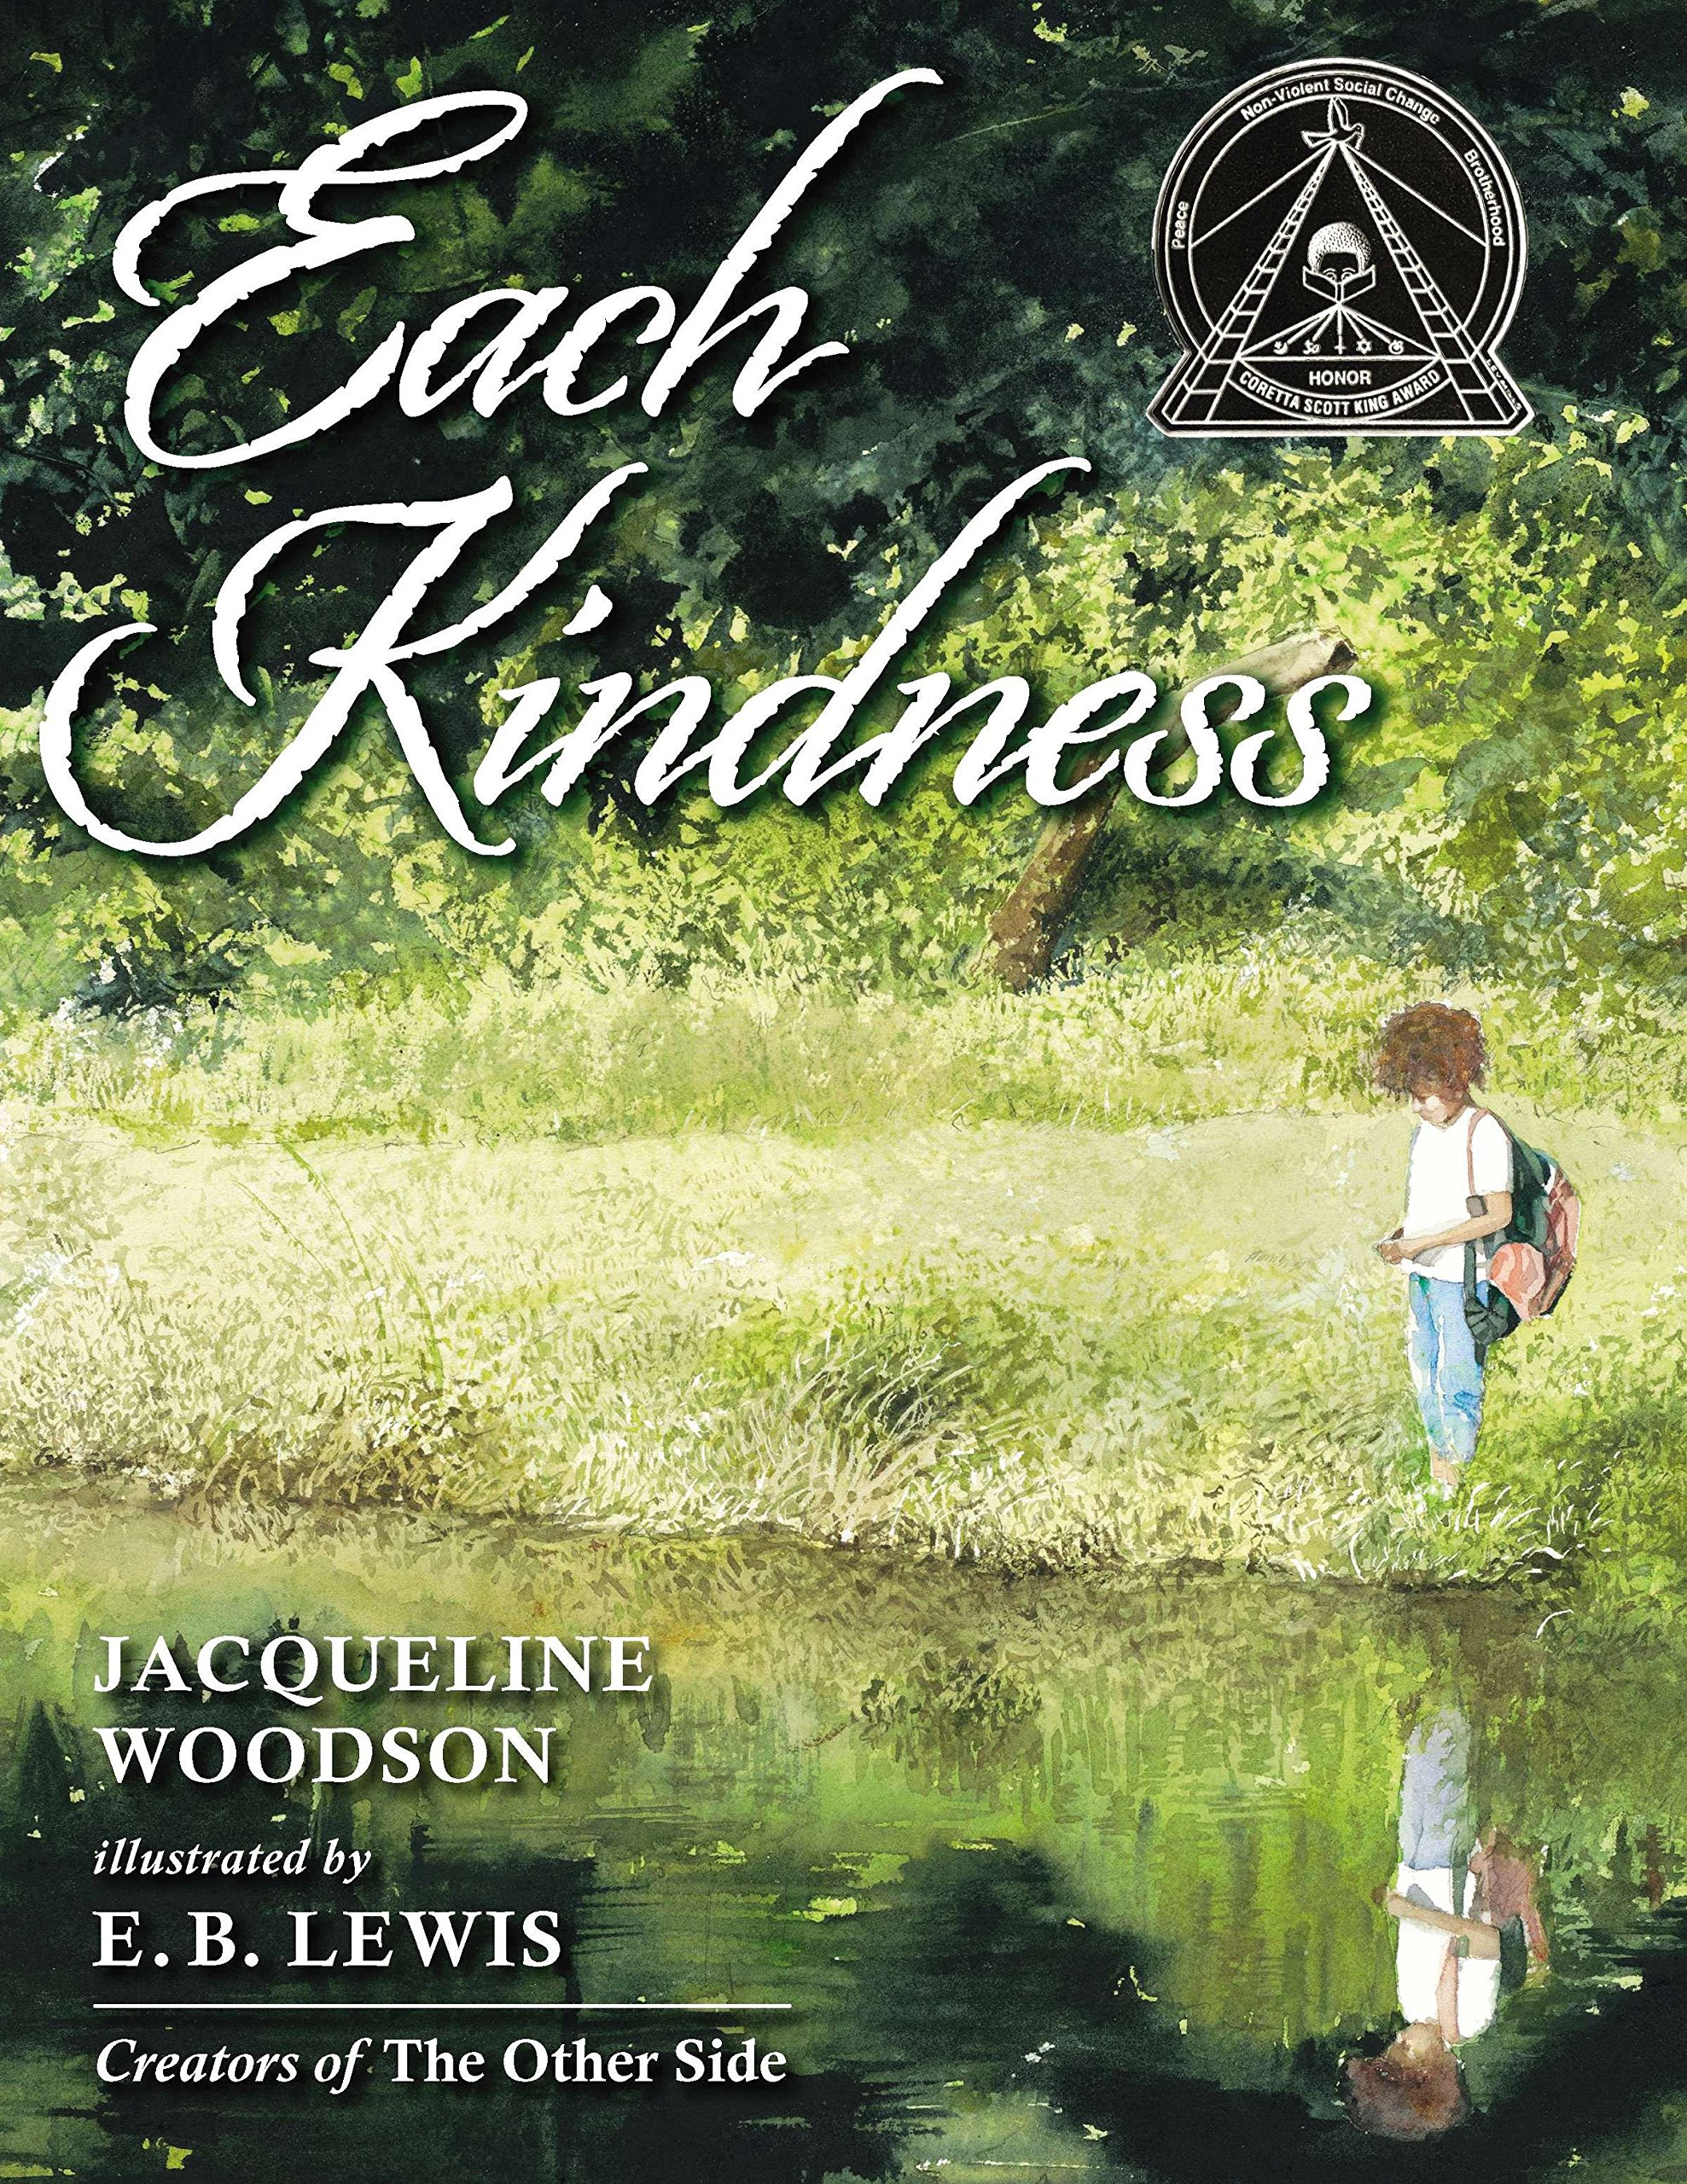 must read picture books for first day of school  - each kindness.jpg